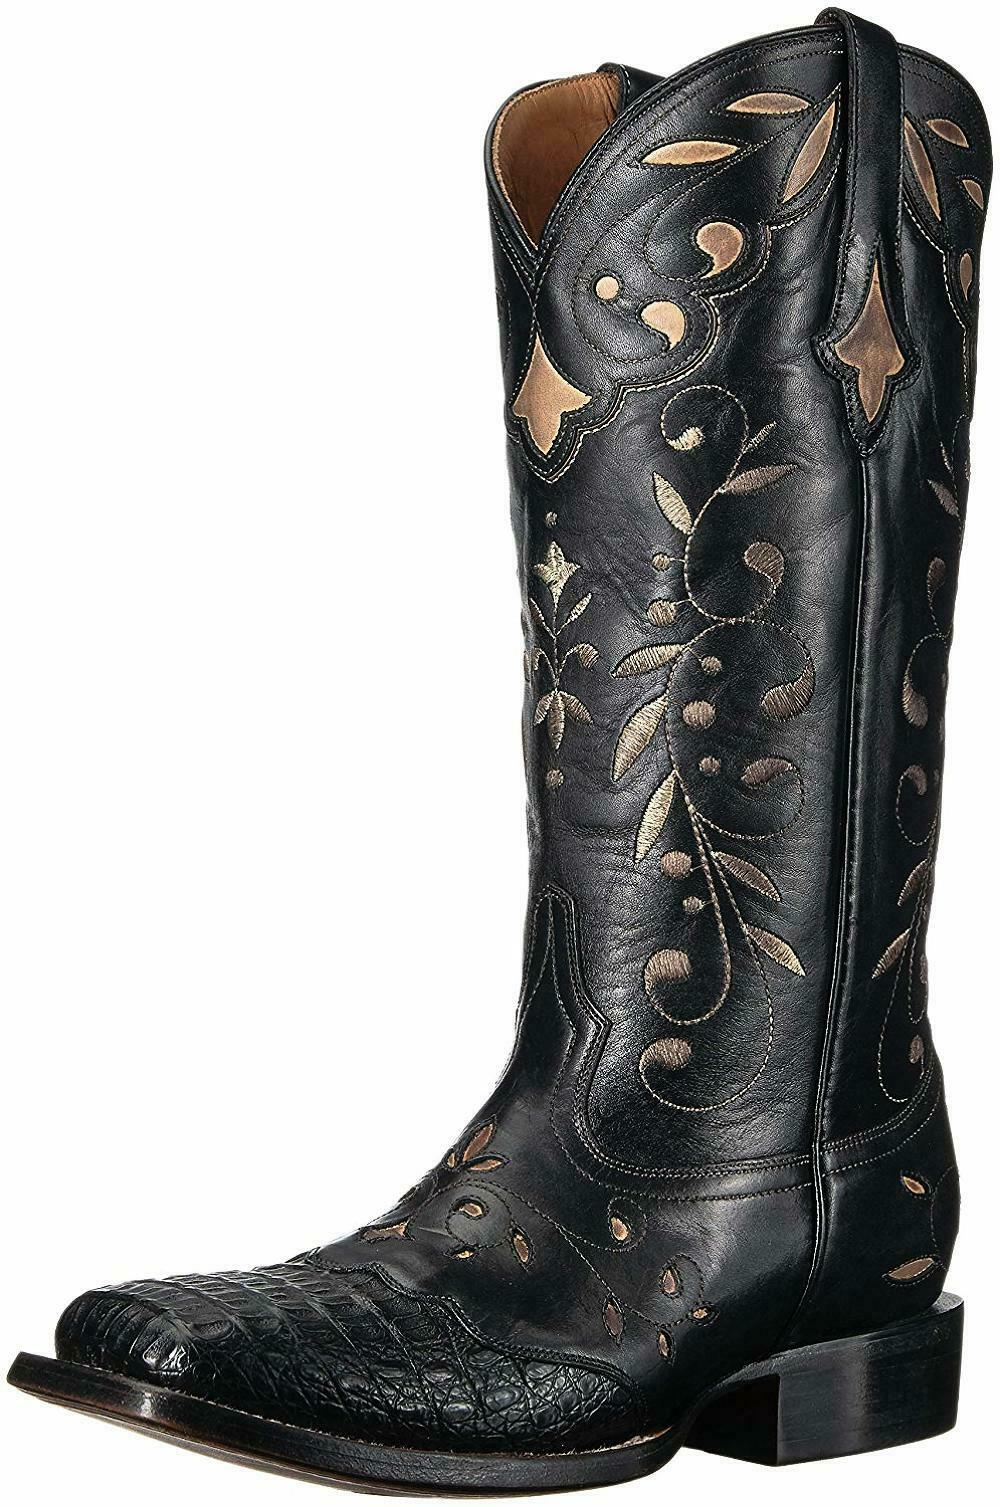 Lucchese Bootmaker Women's Sherilyn Western Boot - Choose SZ color